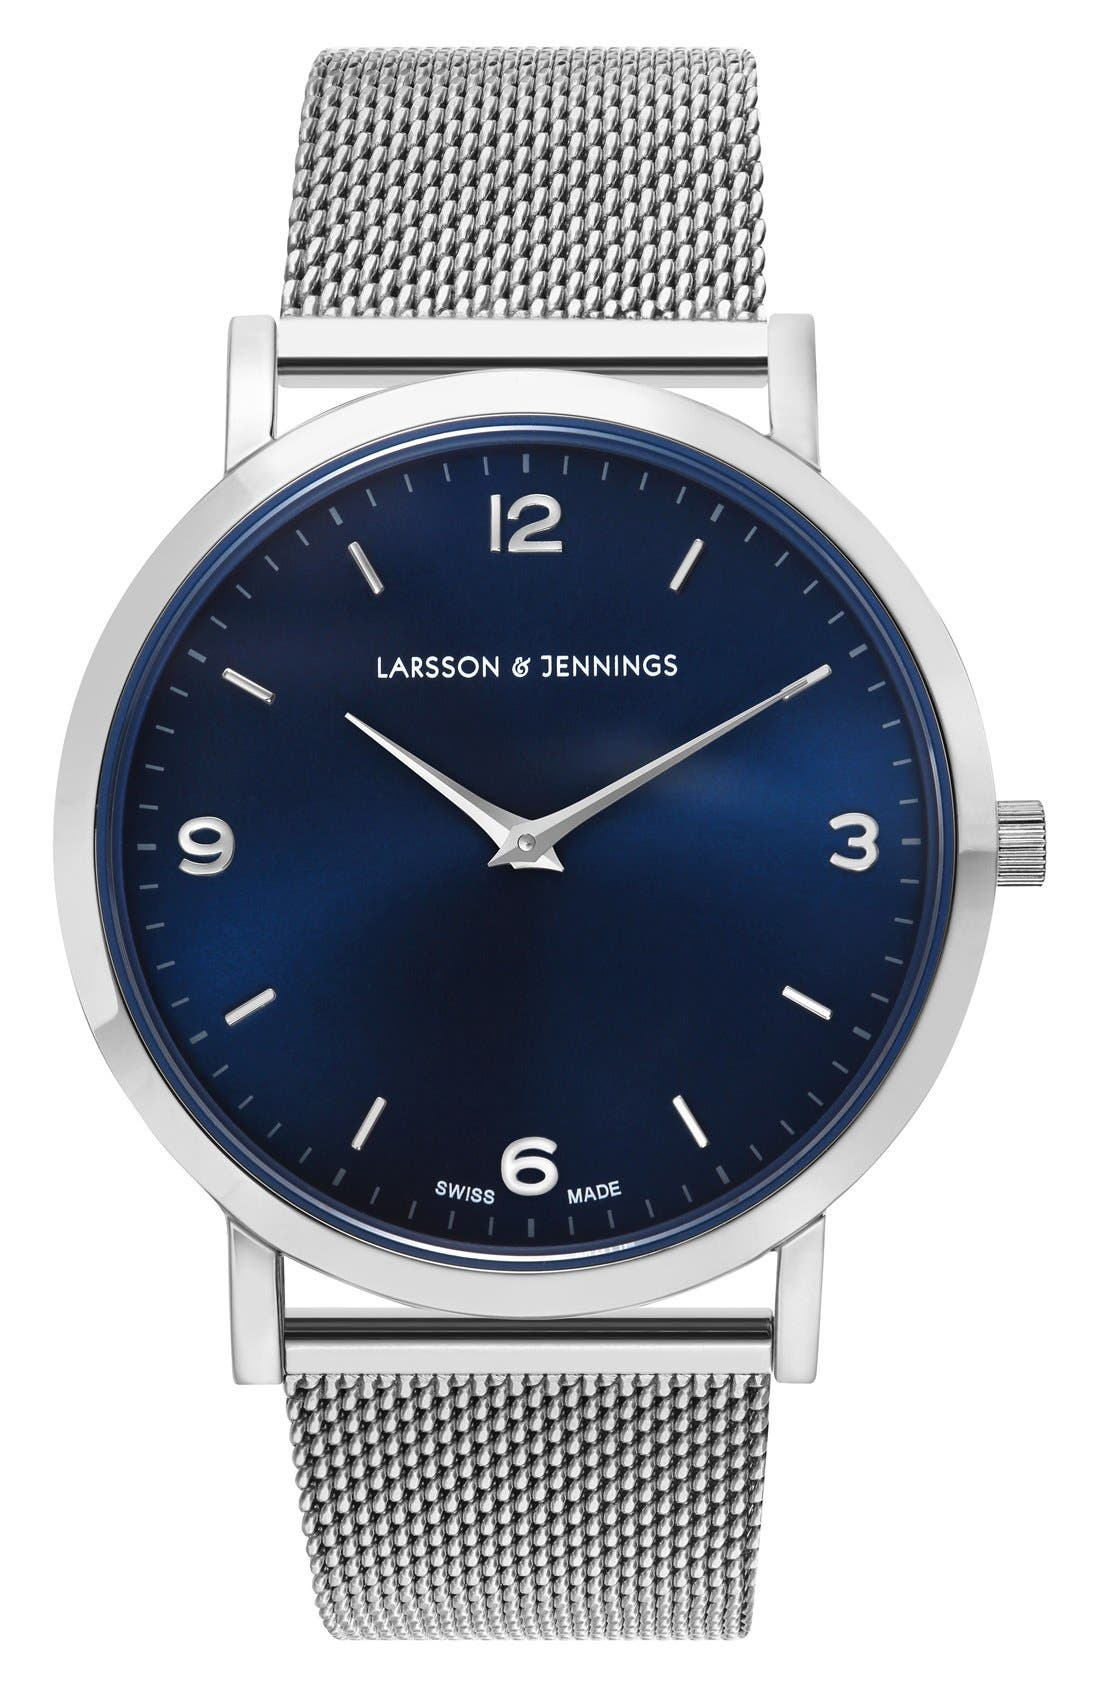 LARSSON & JENNINGS Lugano Mesh Strap Watch, 38mm